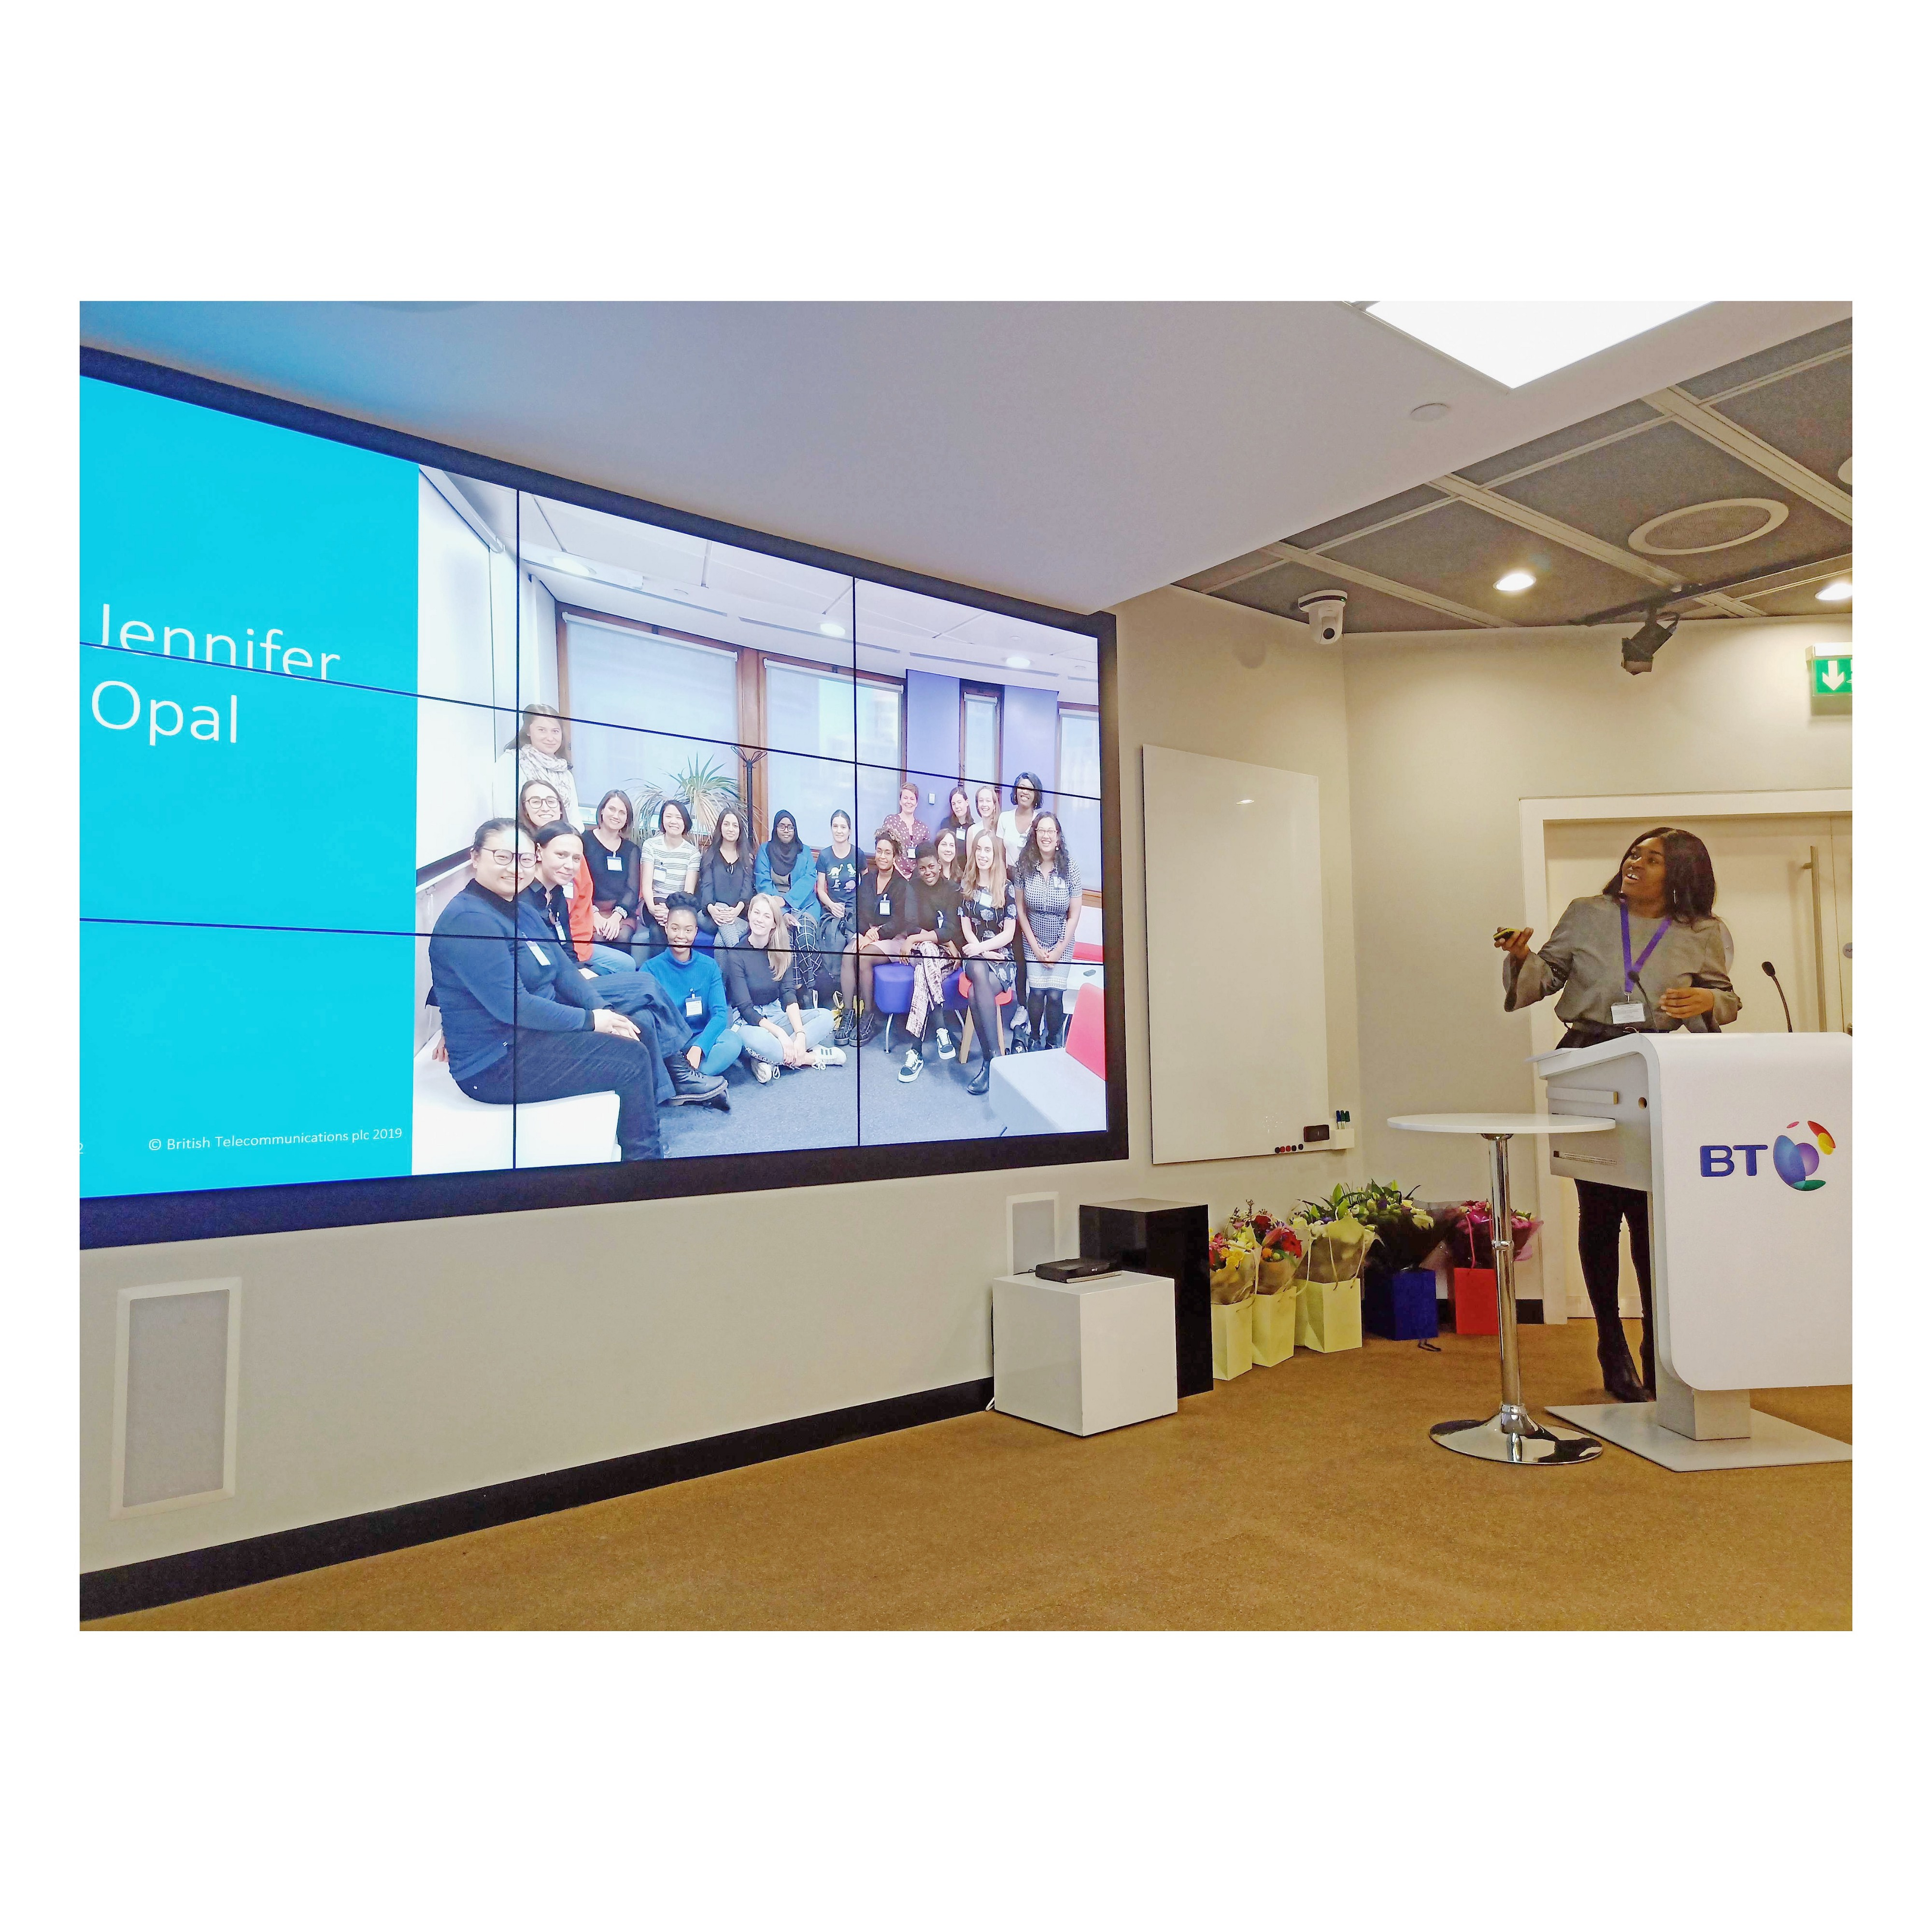 Jennifer Opal giving a speech at BT Groups Head Office in London